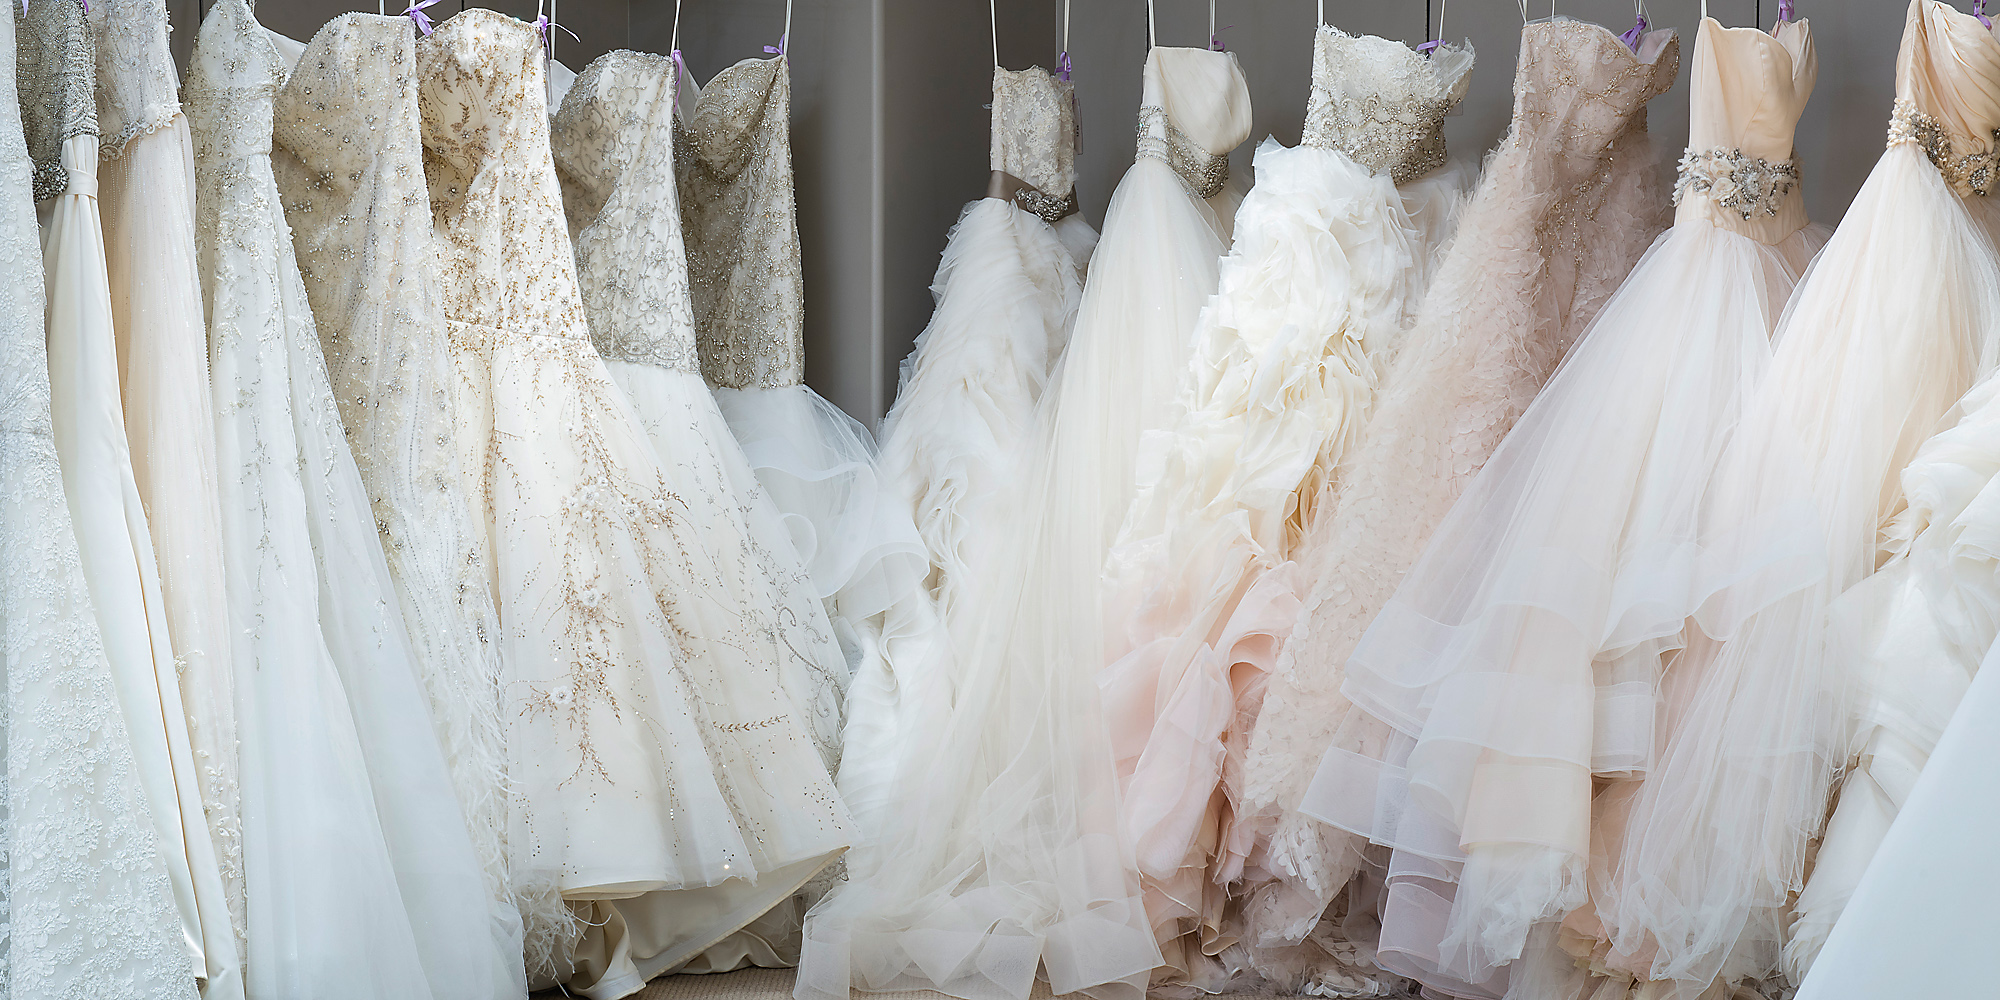 Dallas wedding dresses stardust celebrations for Dry cleaning a wedding dress